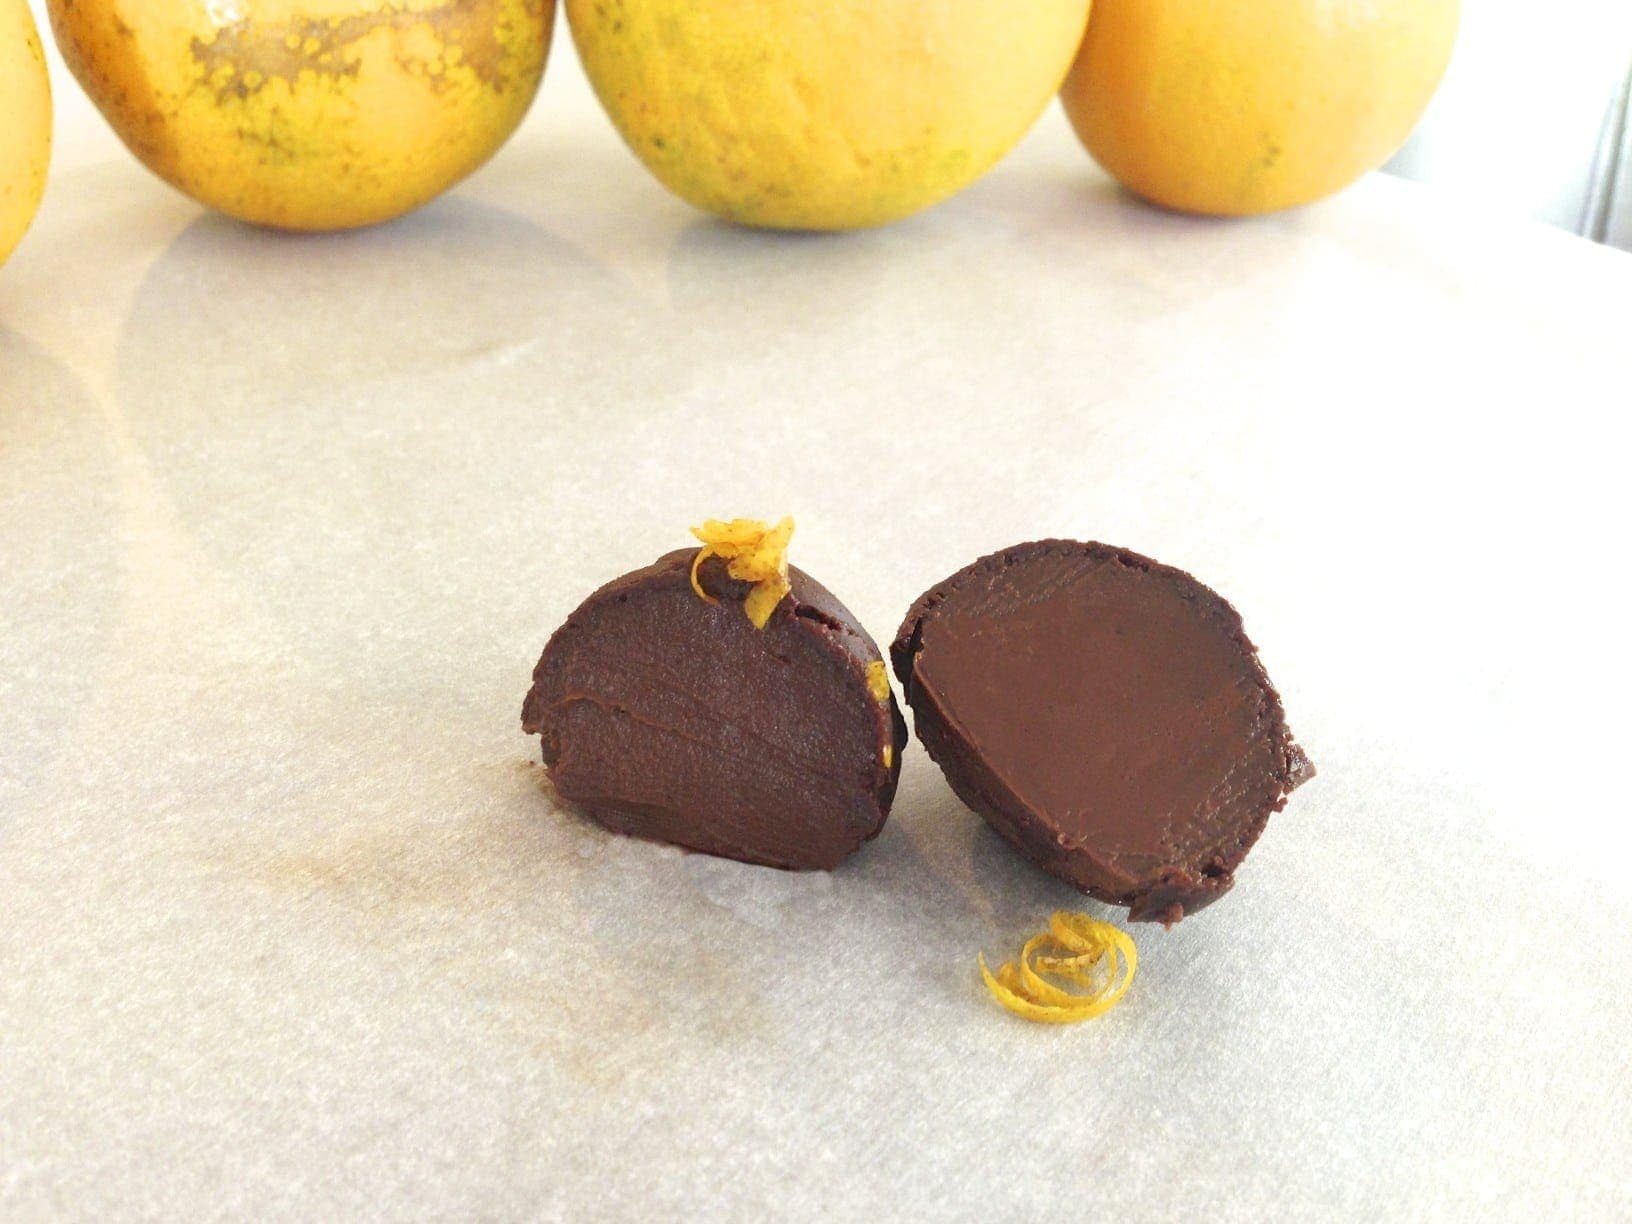 sugar free truffle Archives - Living Healthy With Chocolate